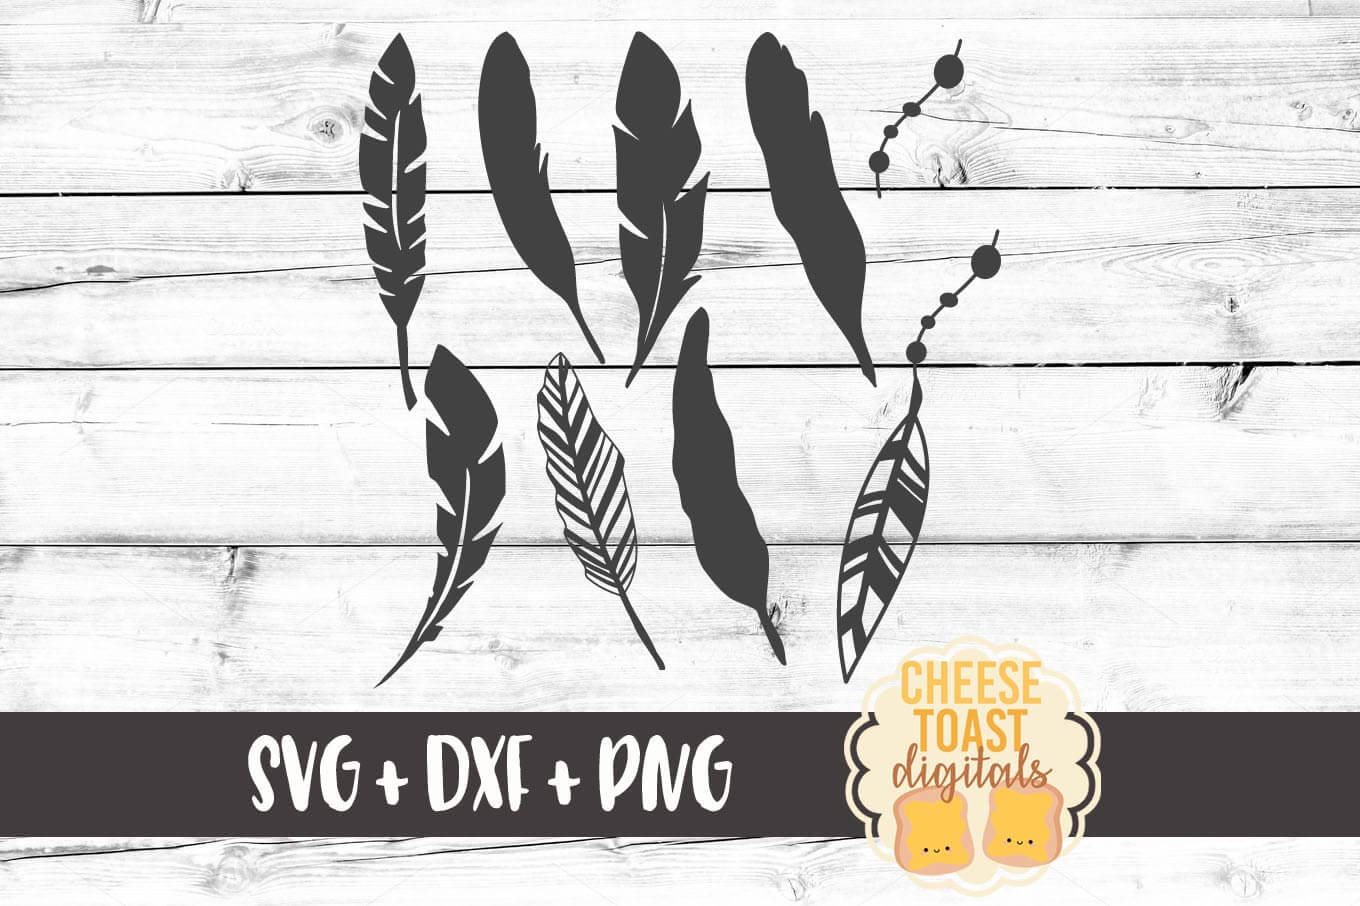 Feathers - SVG, PNG, DXF